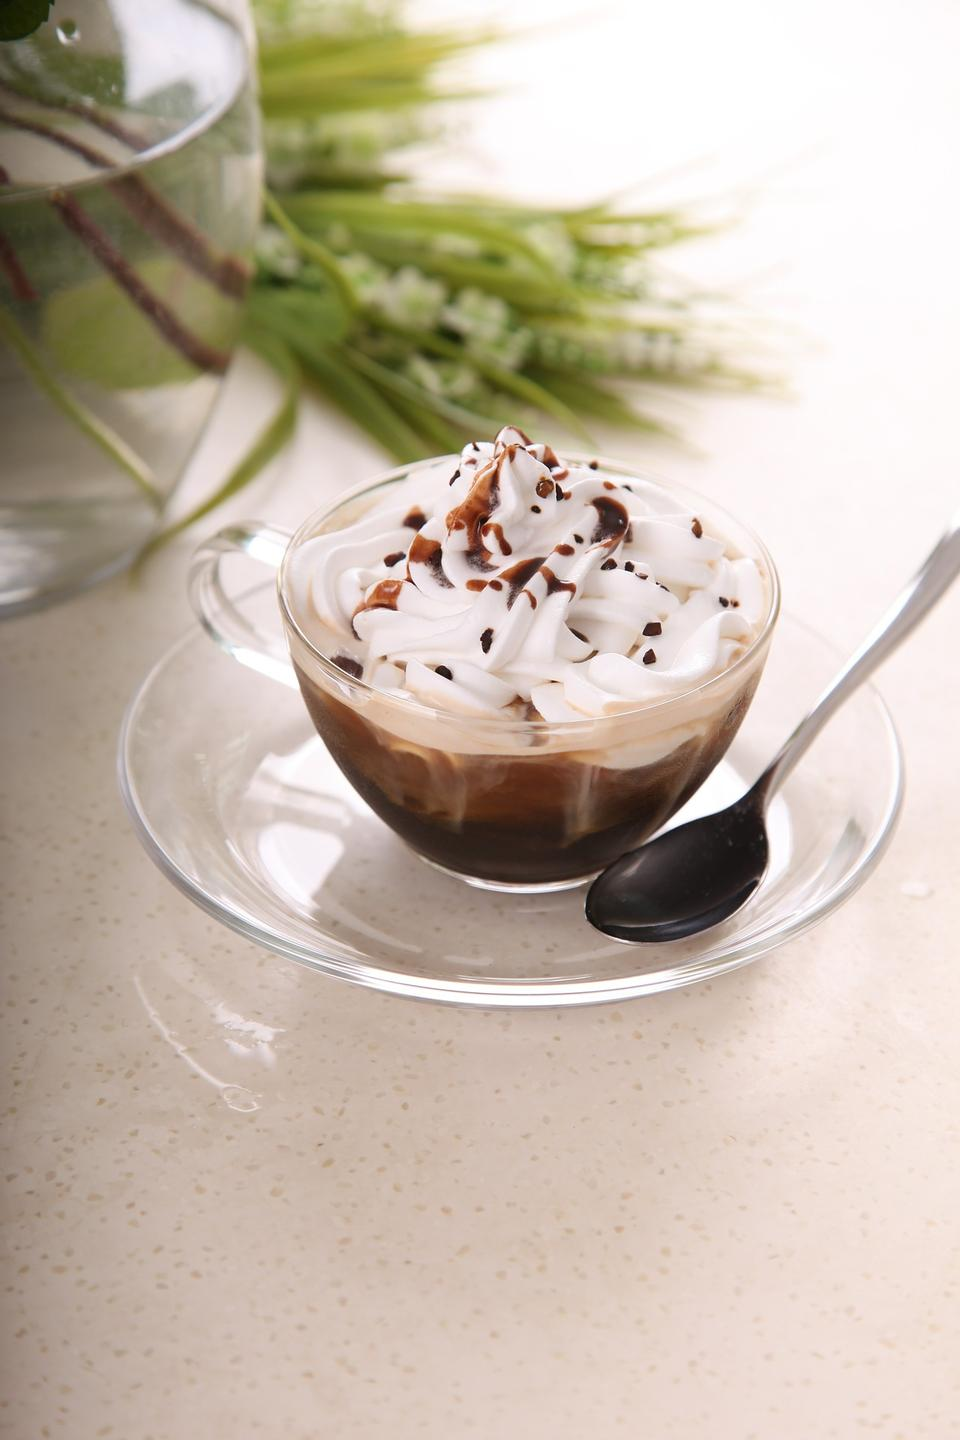 Chocolate dessert with whipped cream